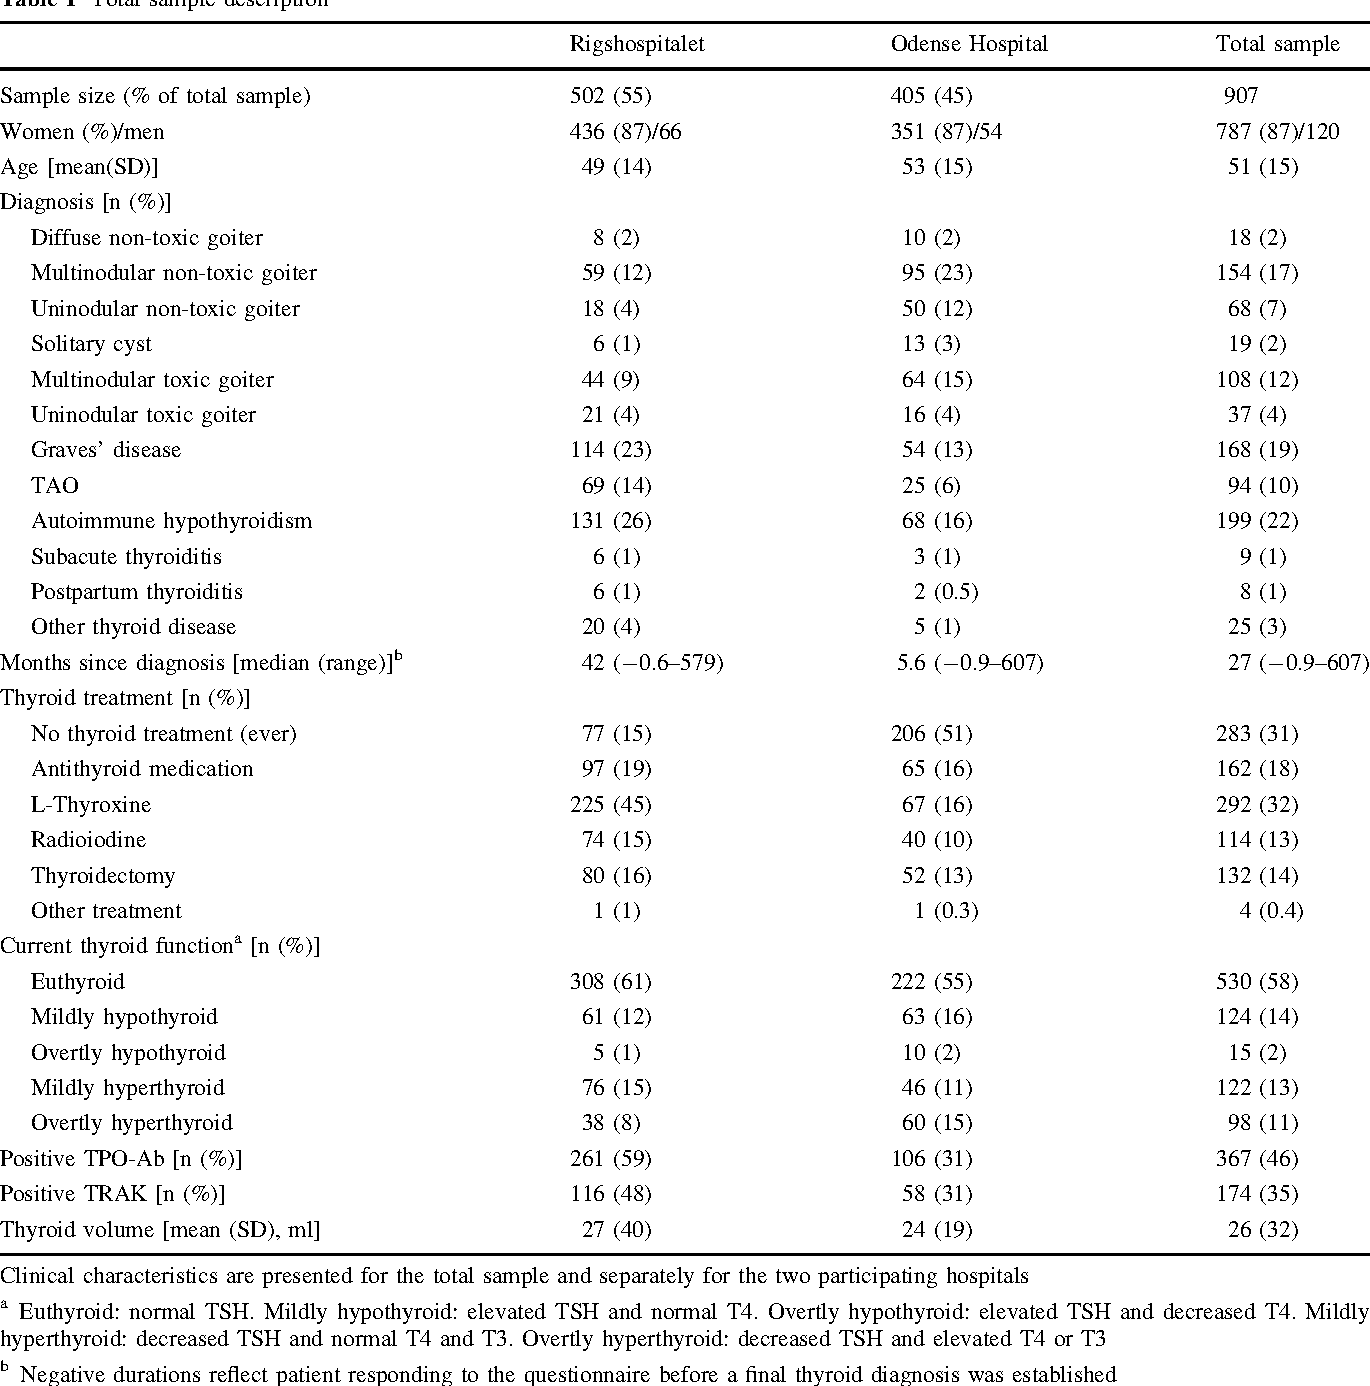 Establishing Construct Validity For The Thyroid Specific Patient